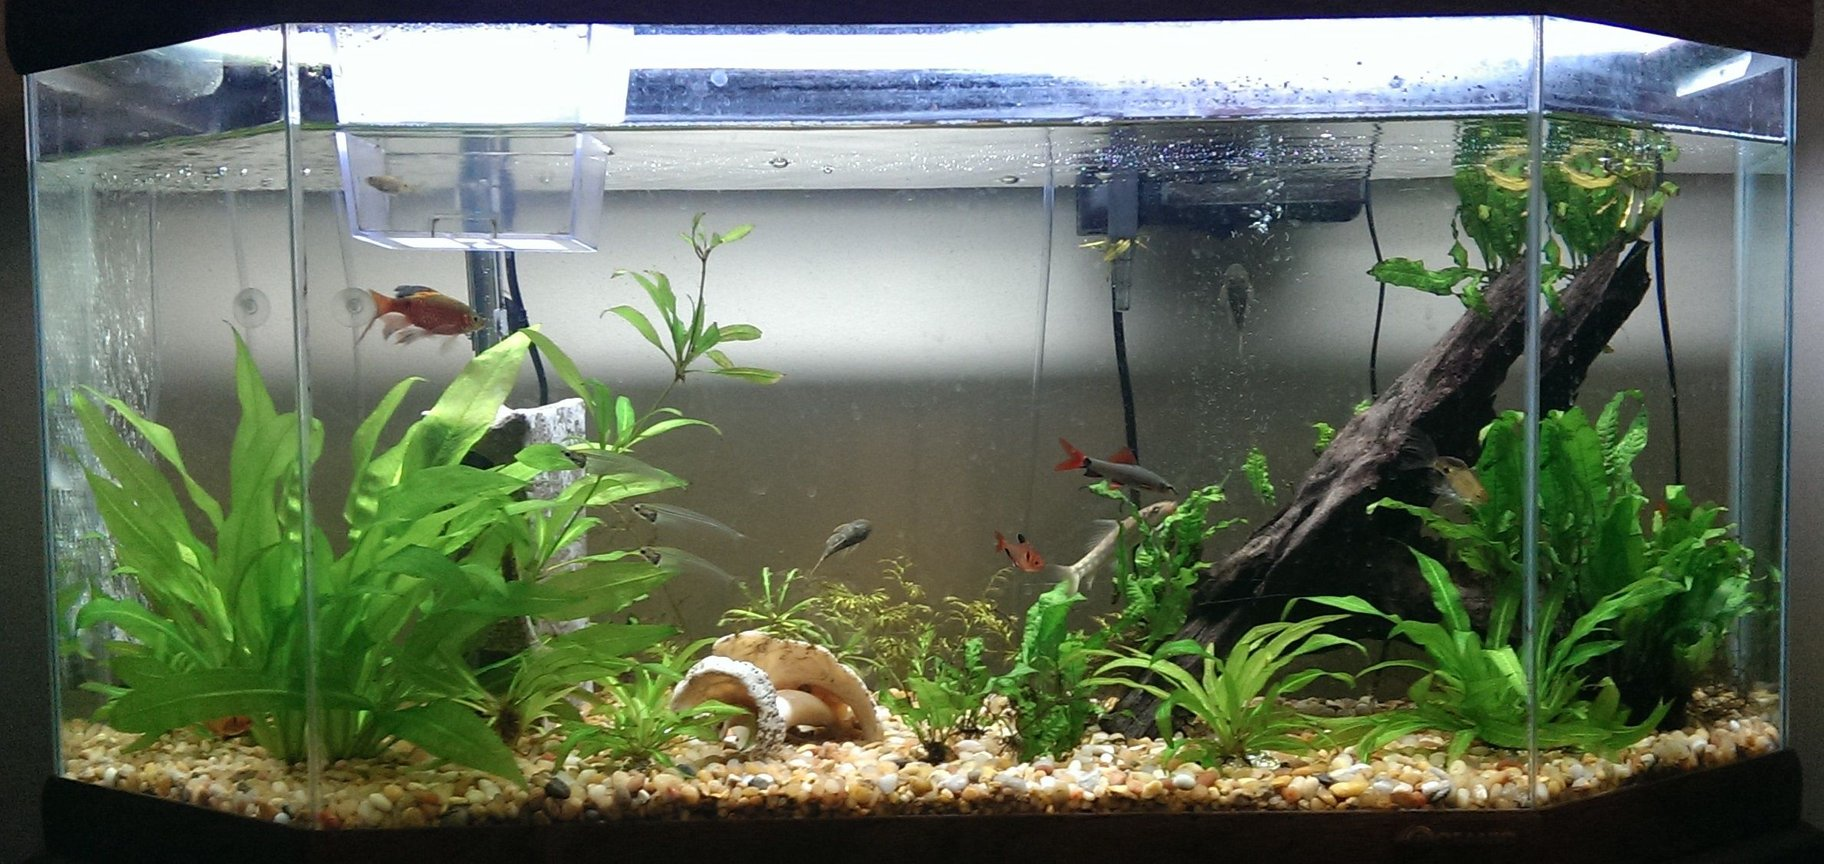 35 gallons planted tank (mostly live plants and fish) - Still a beginner but the tank currently contains amazon swords, java fern, and some water sprites. Also the water level isn't usually that low but it just happened to be when I took this photo.